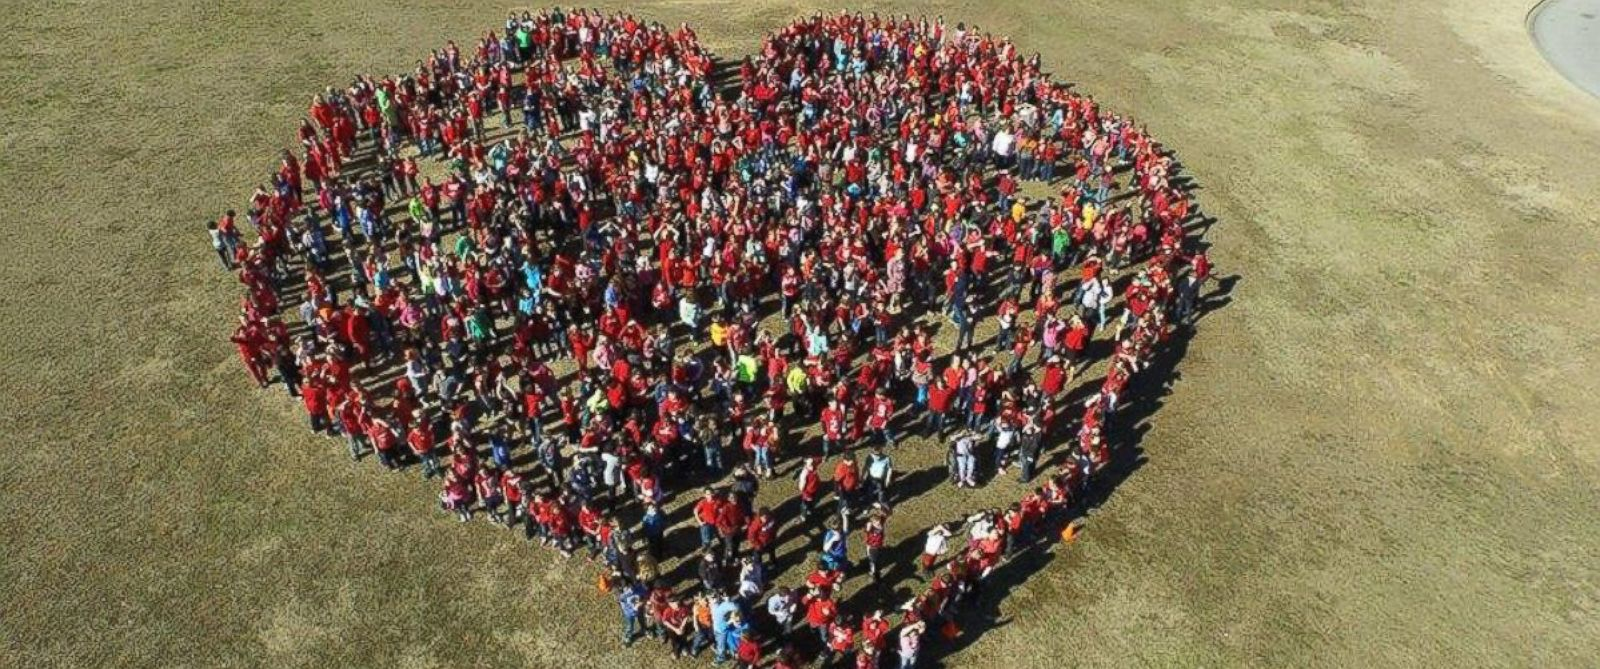 Children across the country participate in the Great Kindness Challenge